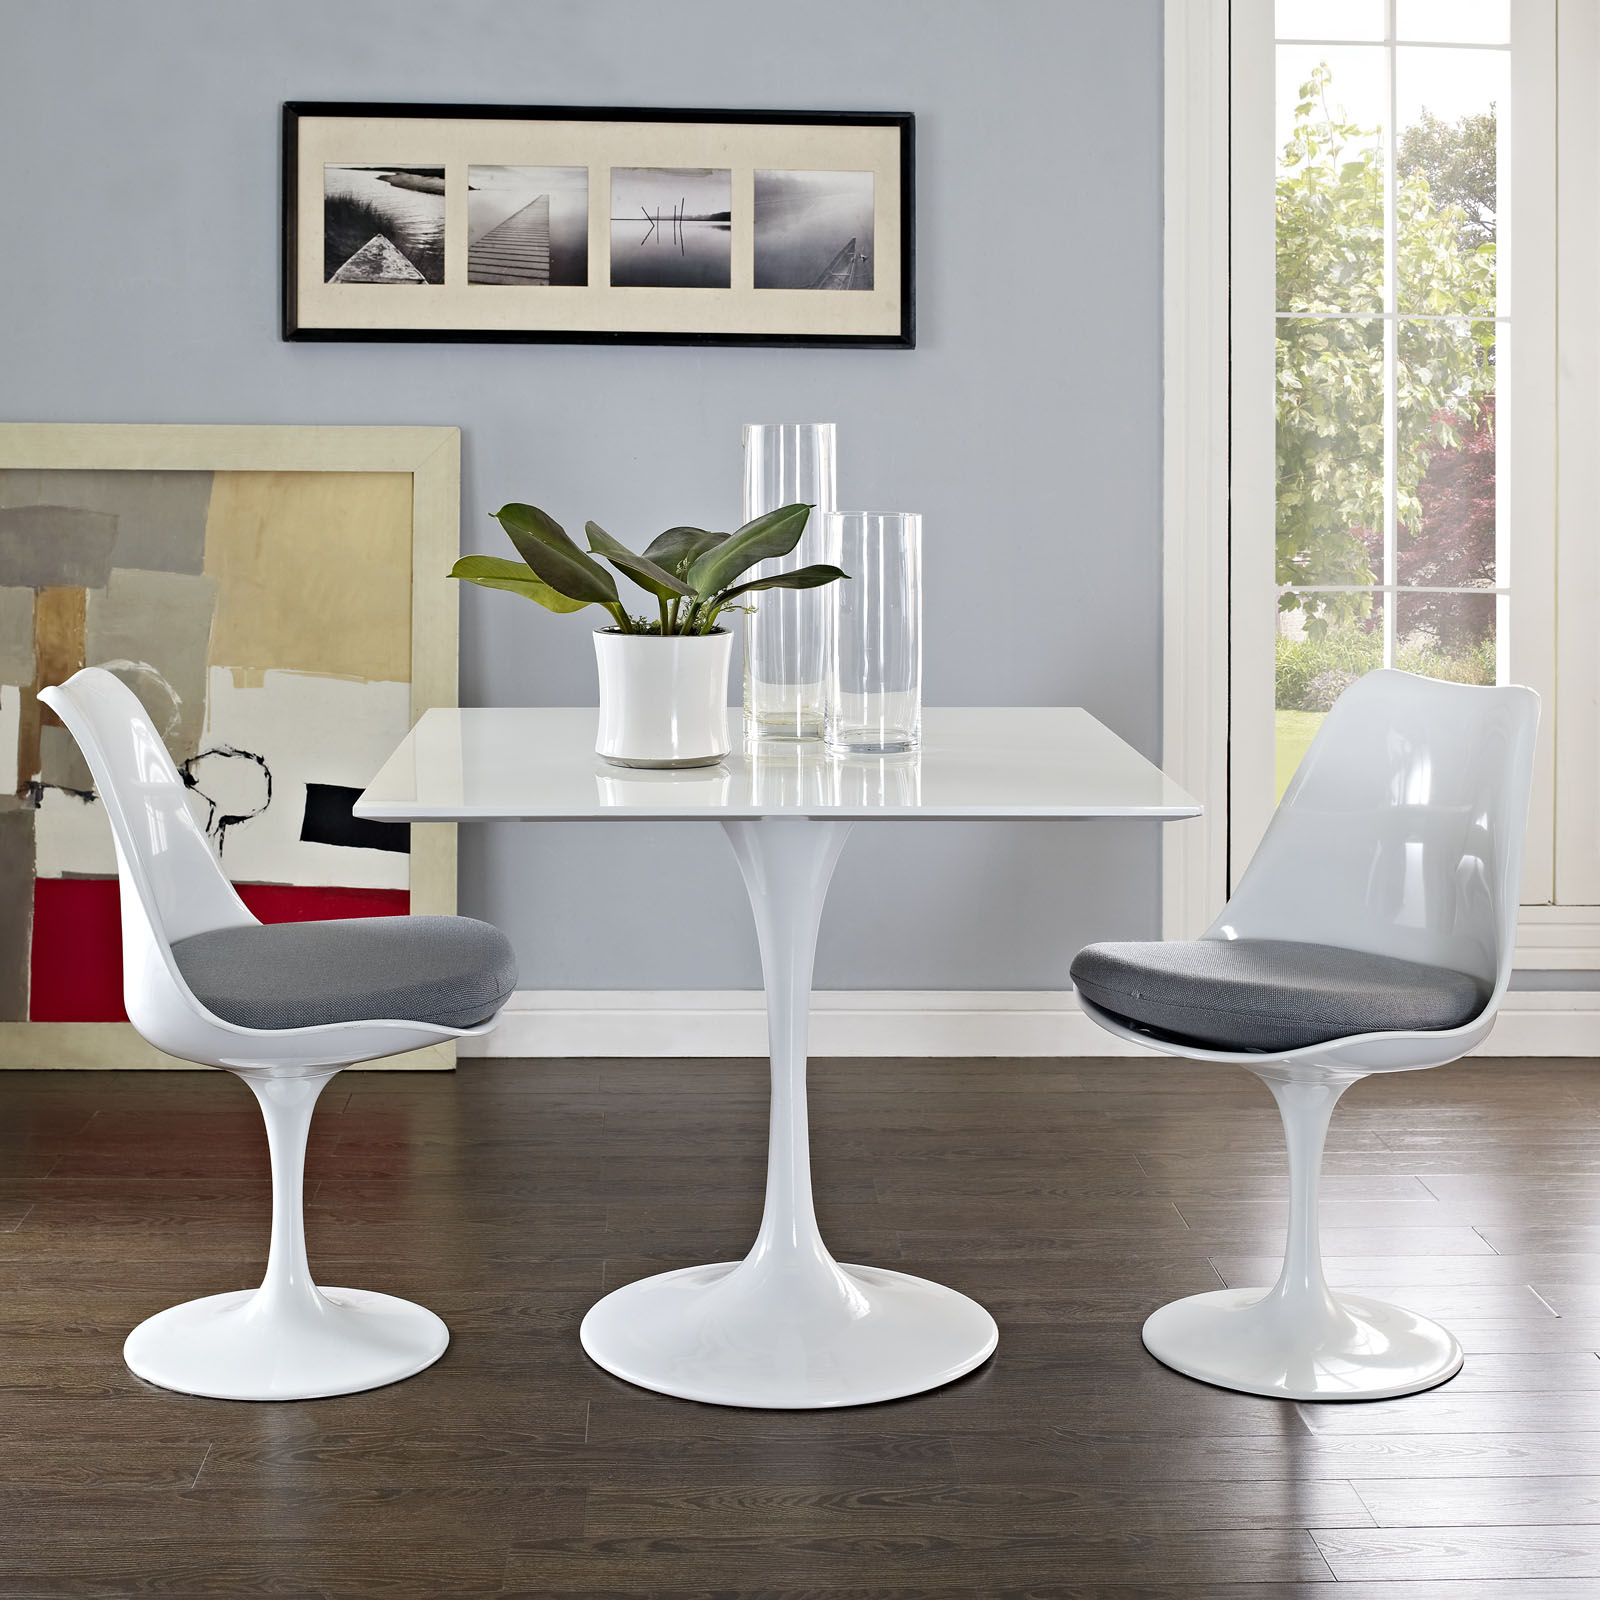 36inch-tulip-table.jpg